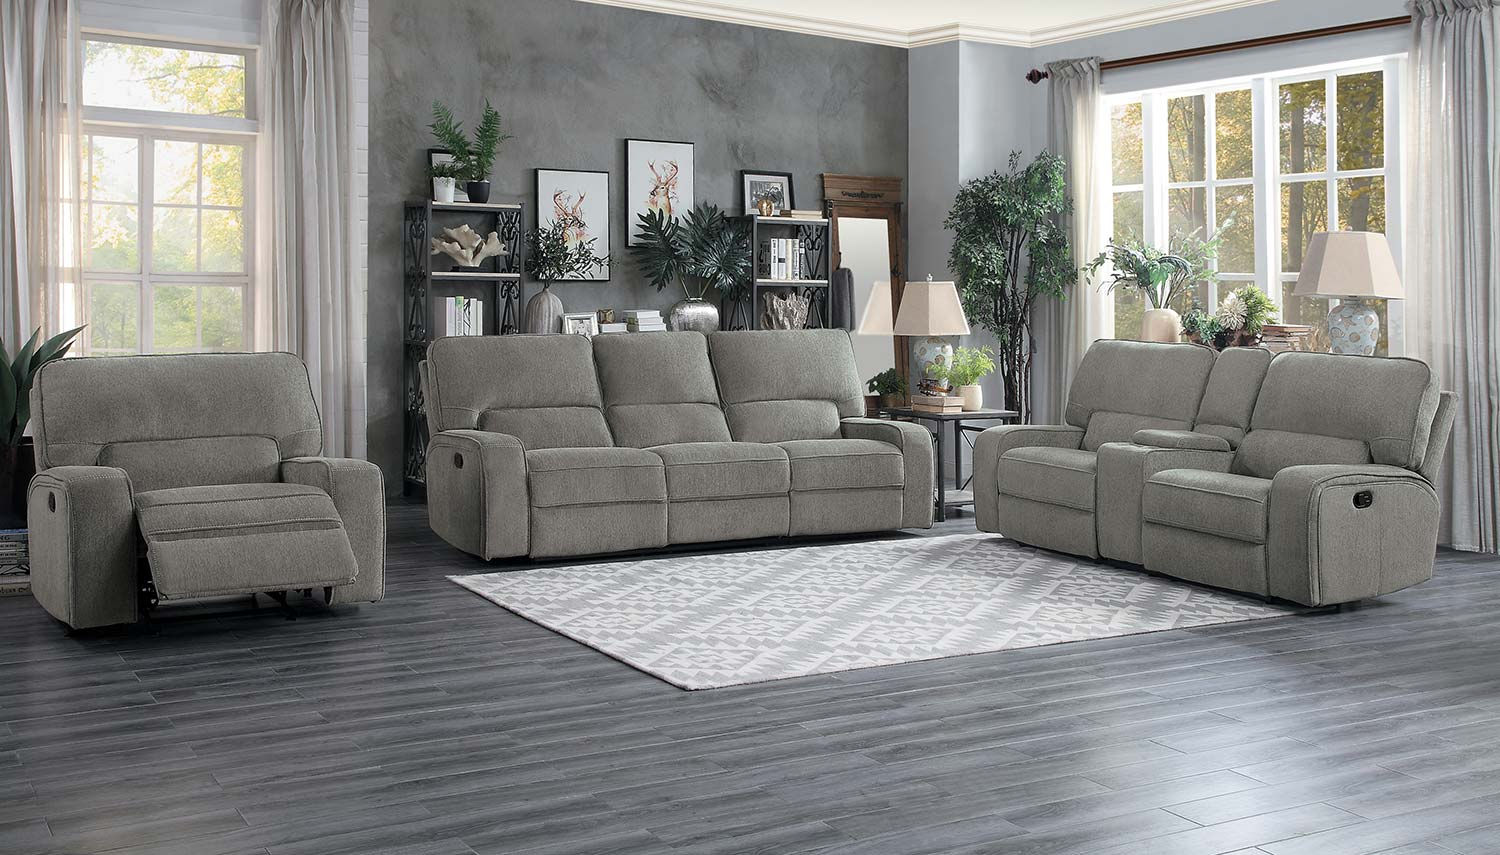 Homelegance Borneo Power Reclining Sofa Set - Mocha